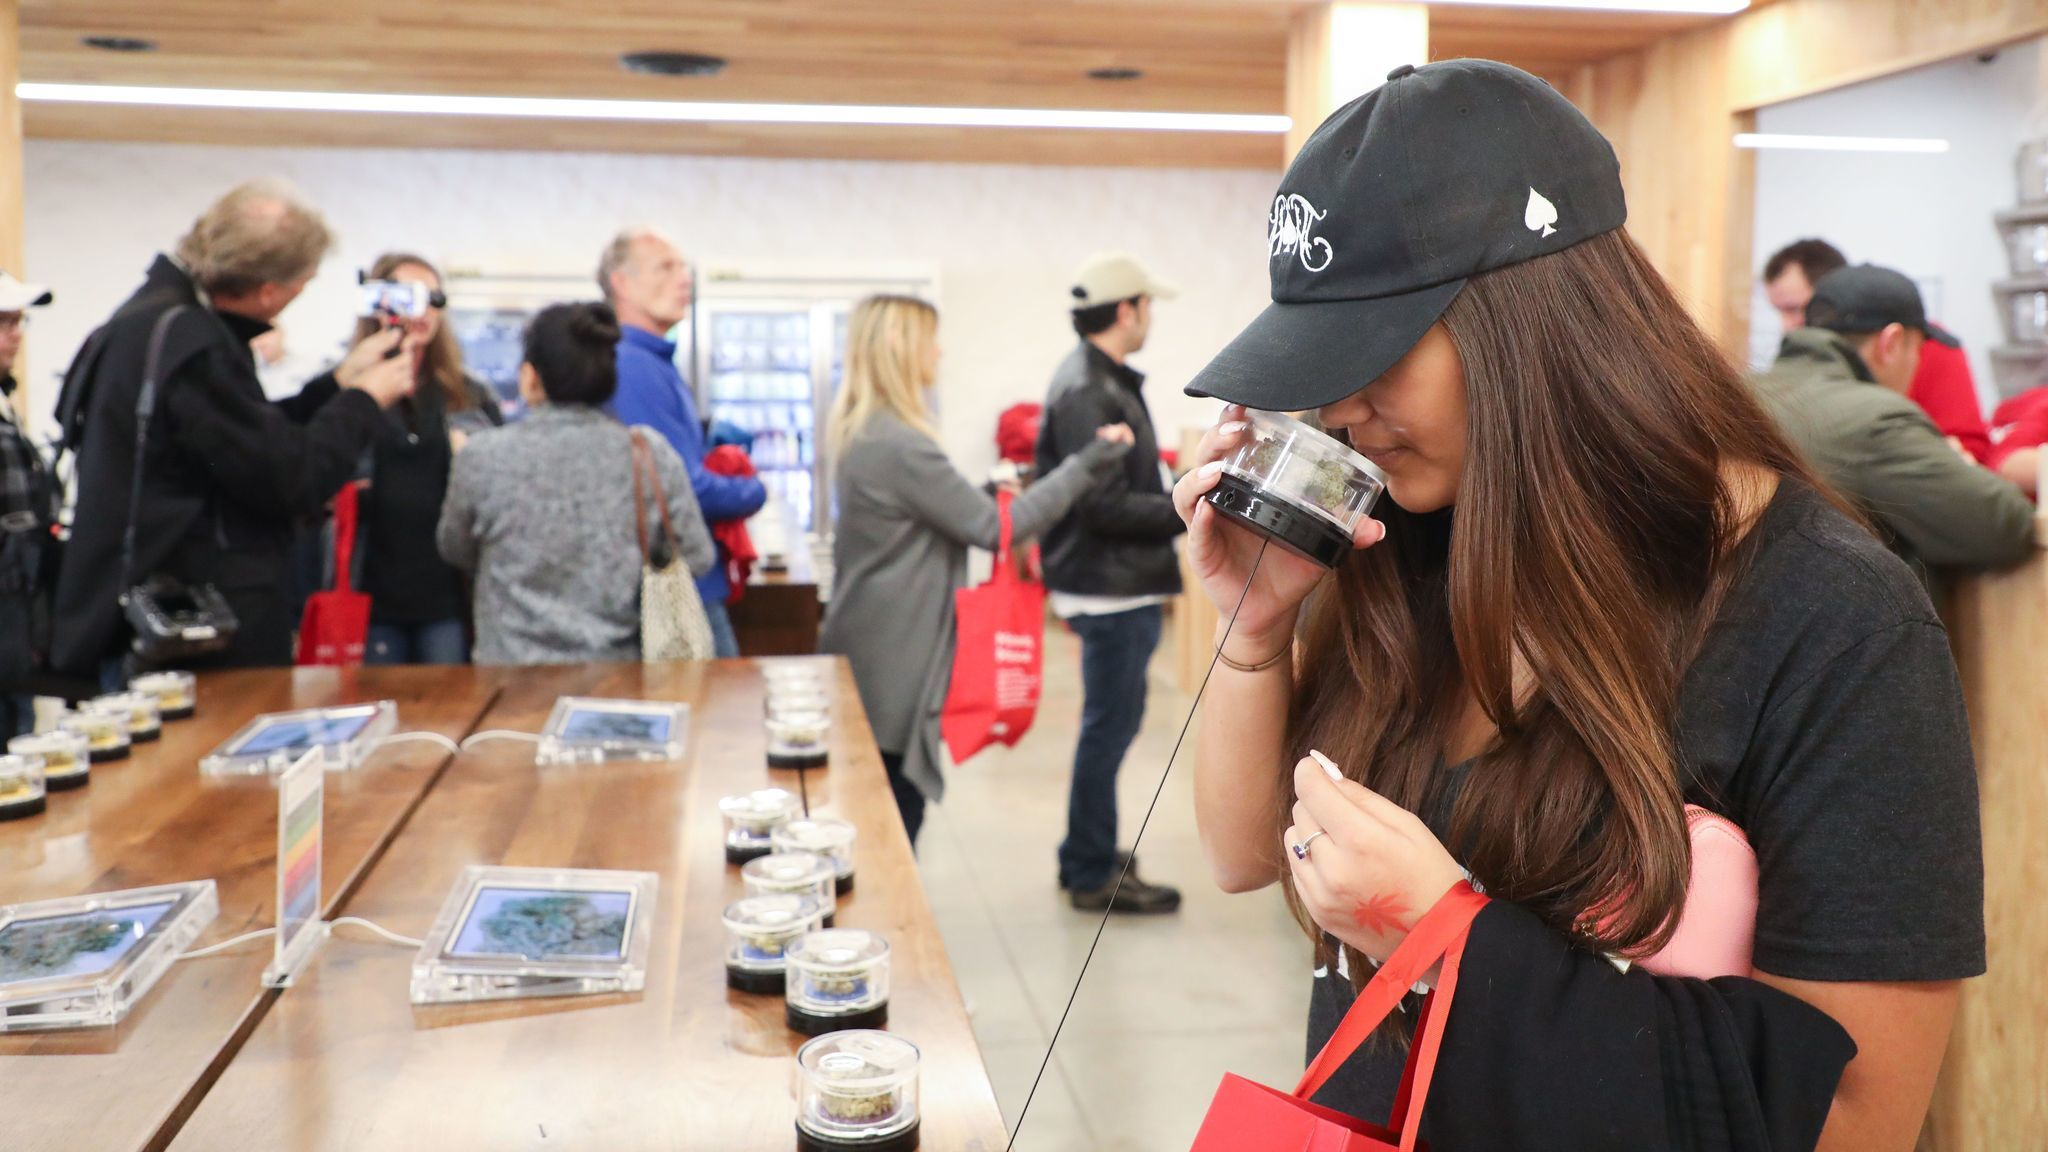 A customer test sniffs the cannabis at the MedMen dispensary in West Hollywood this month. (Eugene Garcia/EPA-EFE/REX/Shutterstock)